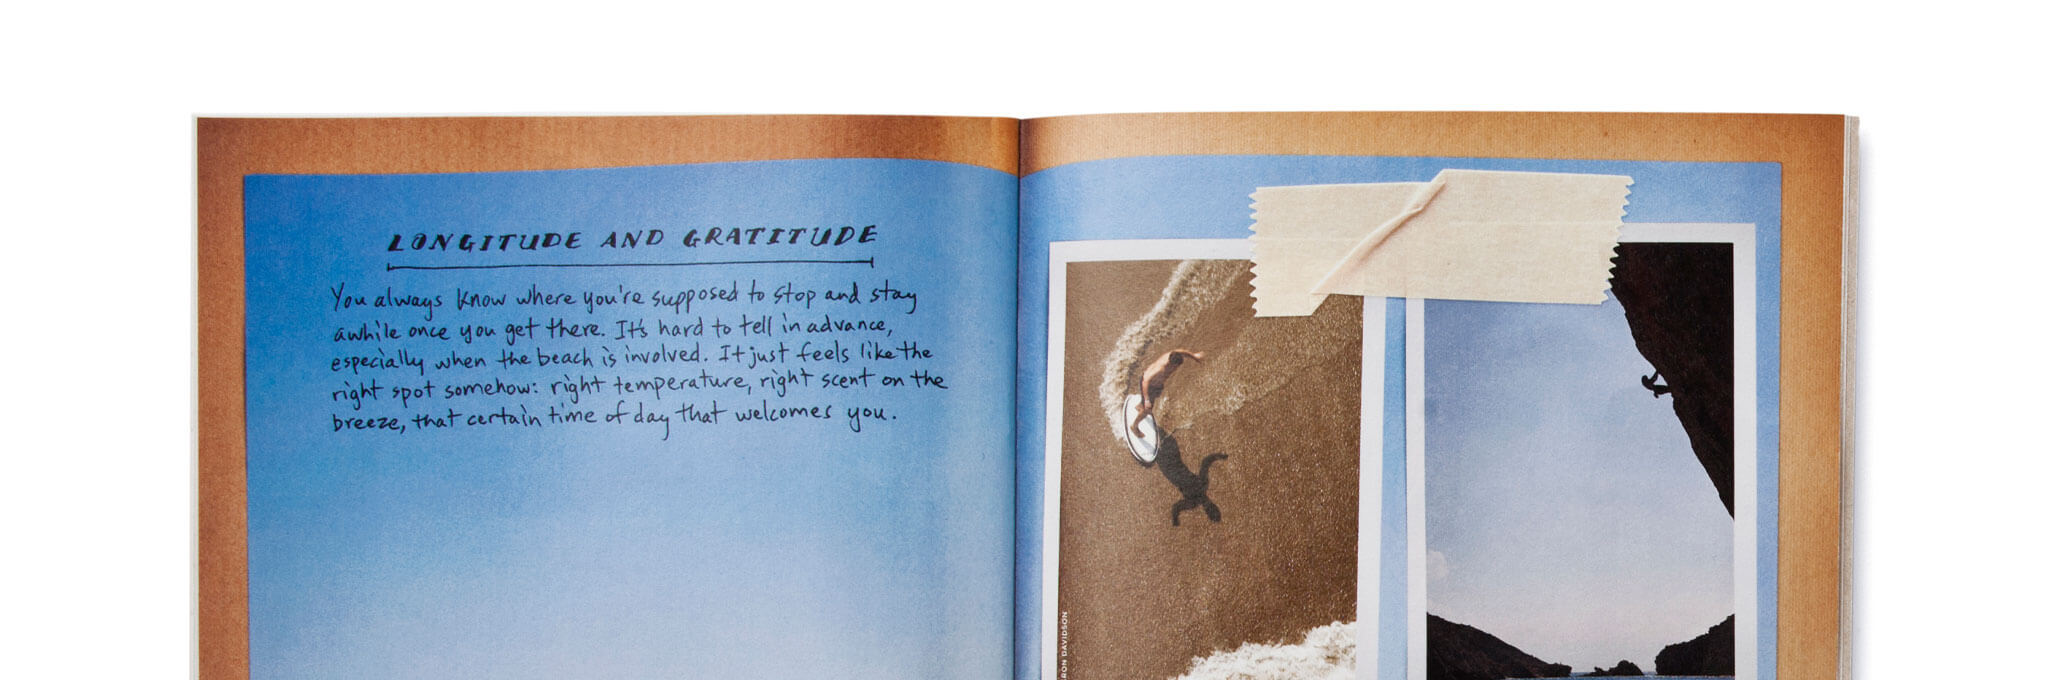 Top half of open catalog showing copy, skimboarding, climbing